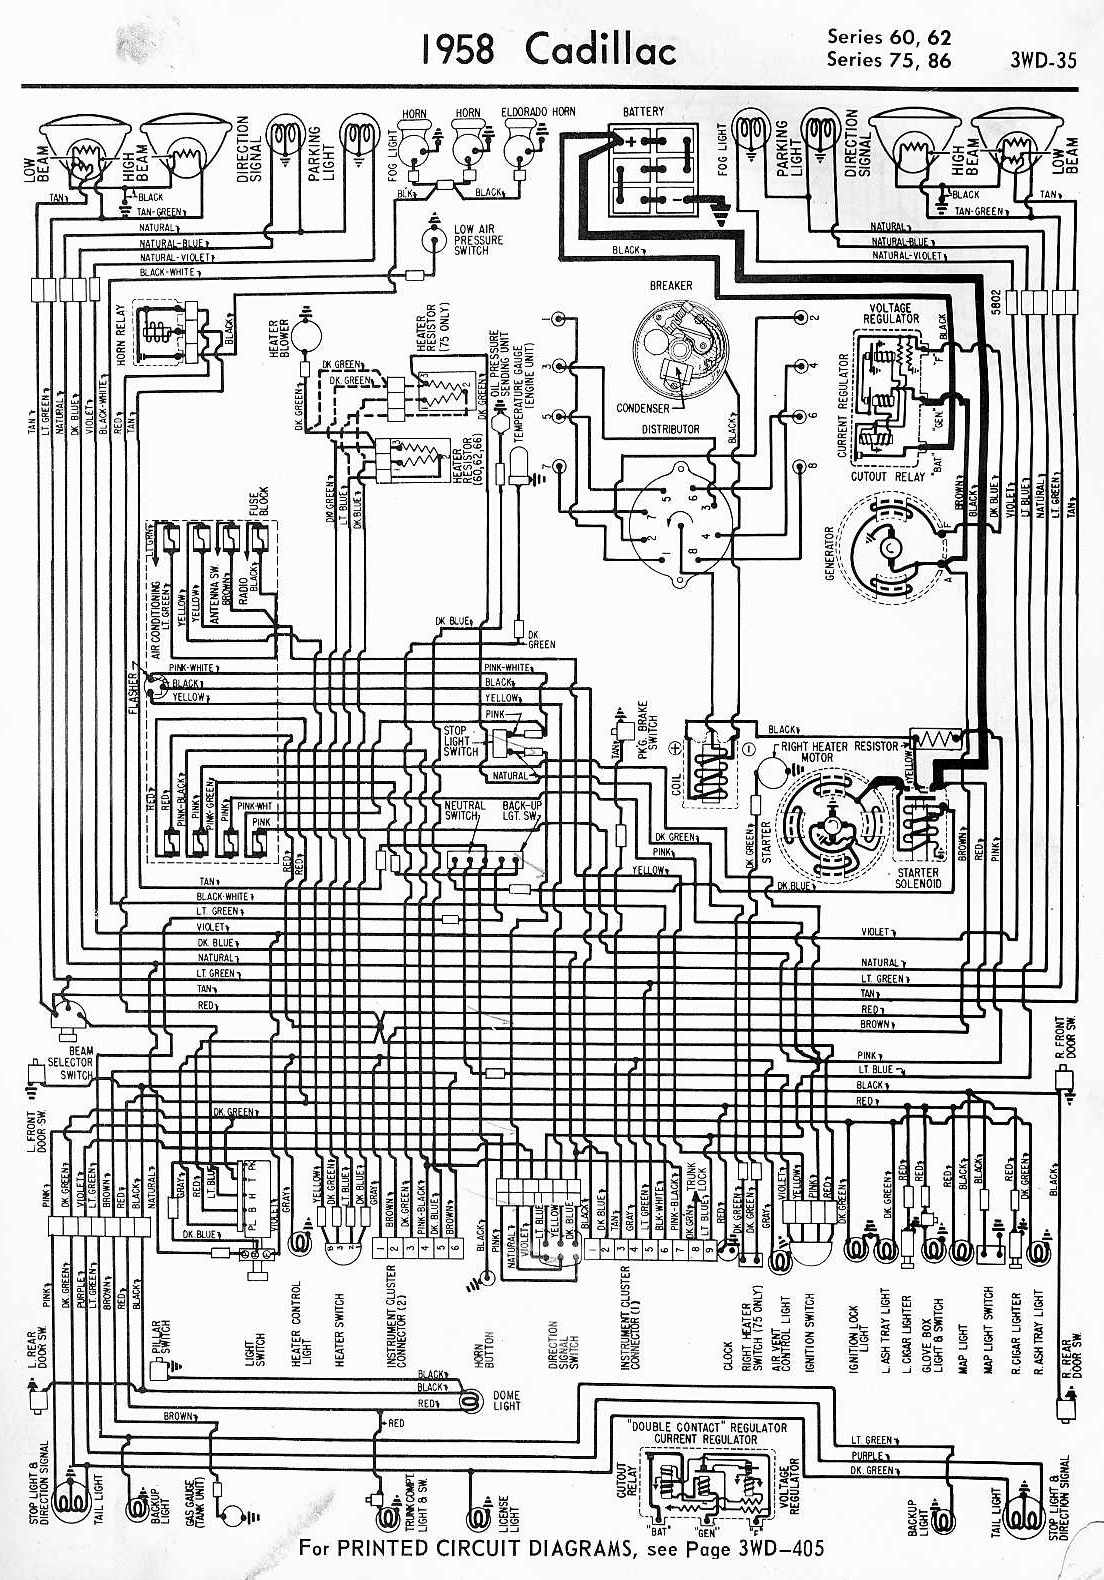 Cadillac Car Manuals Wiring Diagrams Pdf Fault Codes Diagram 05 Cts Download